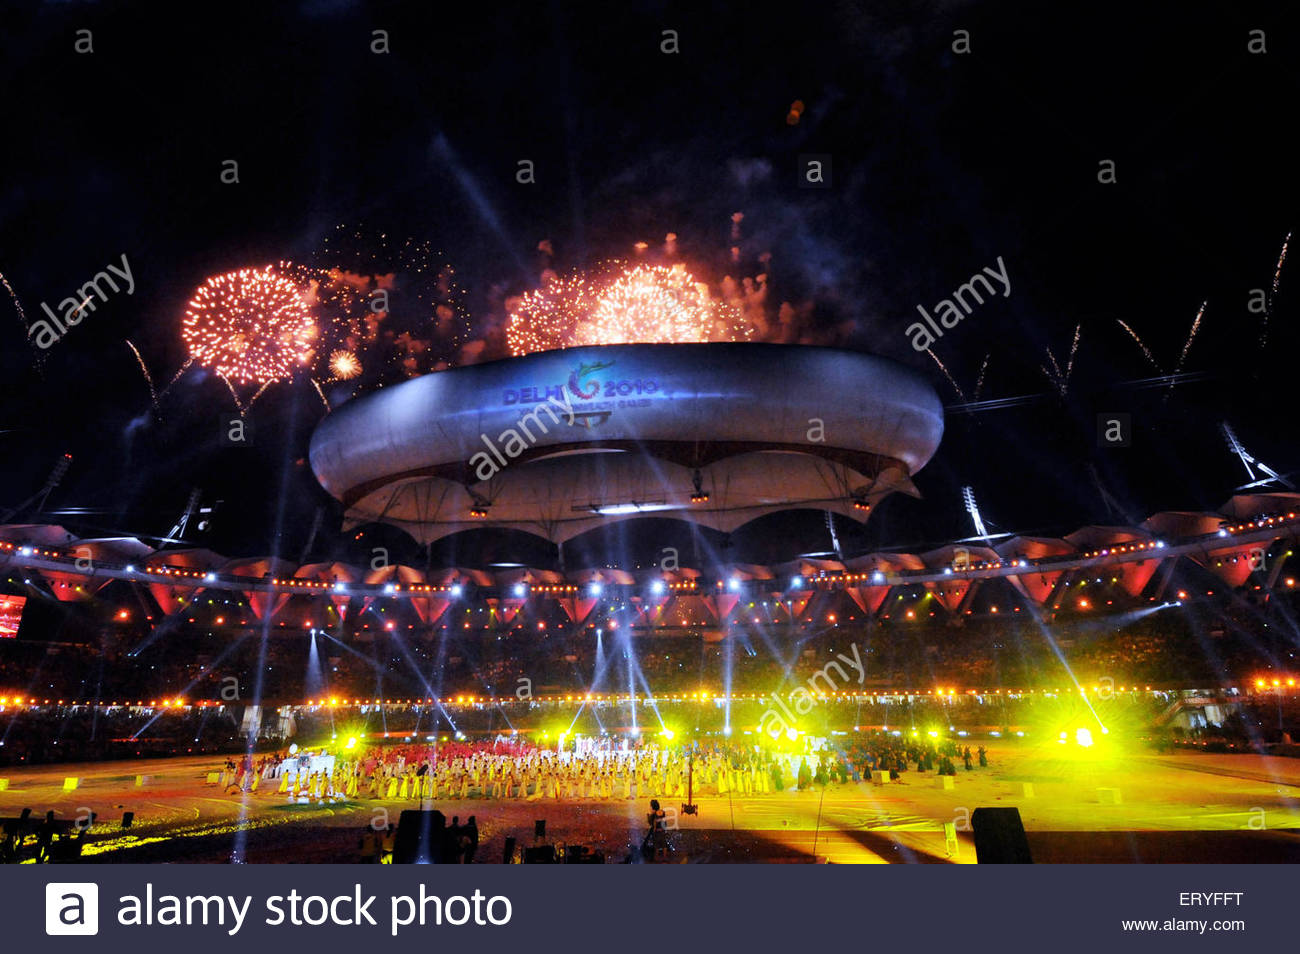 Opening ceremony of nineteen commonwealth games New Delhi India - Stock Image